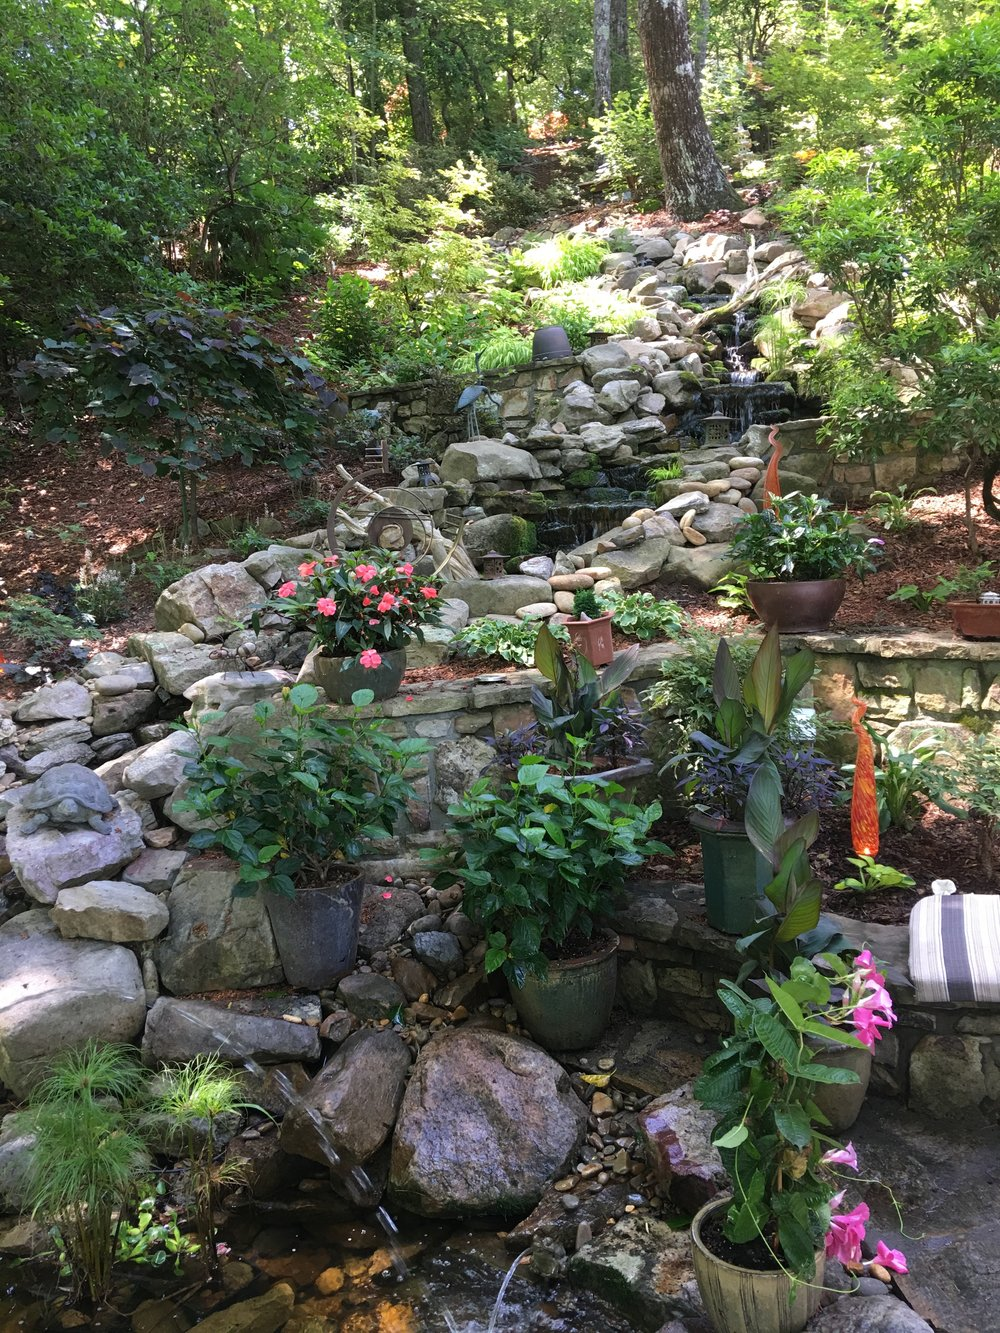 A waterfall feature in a mountain garden.